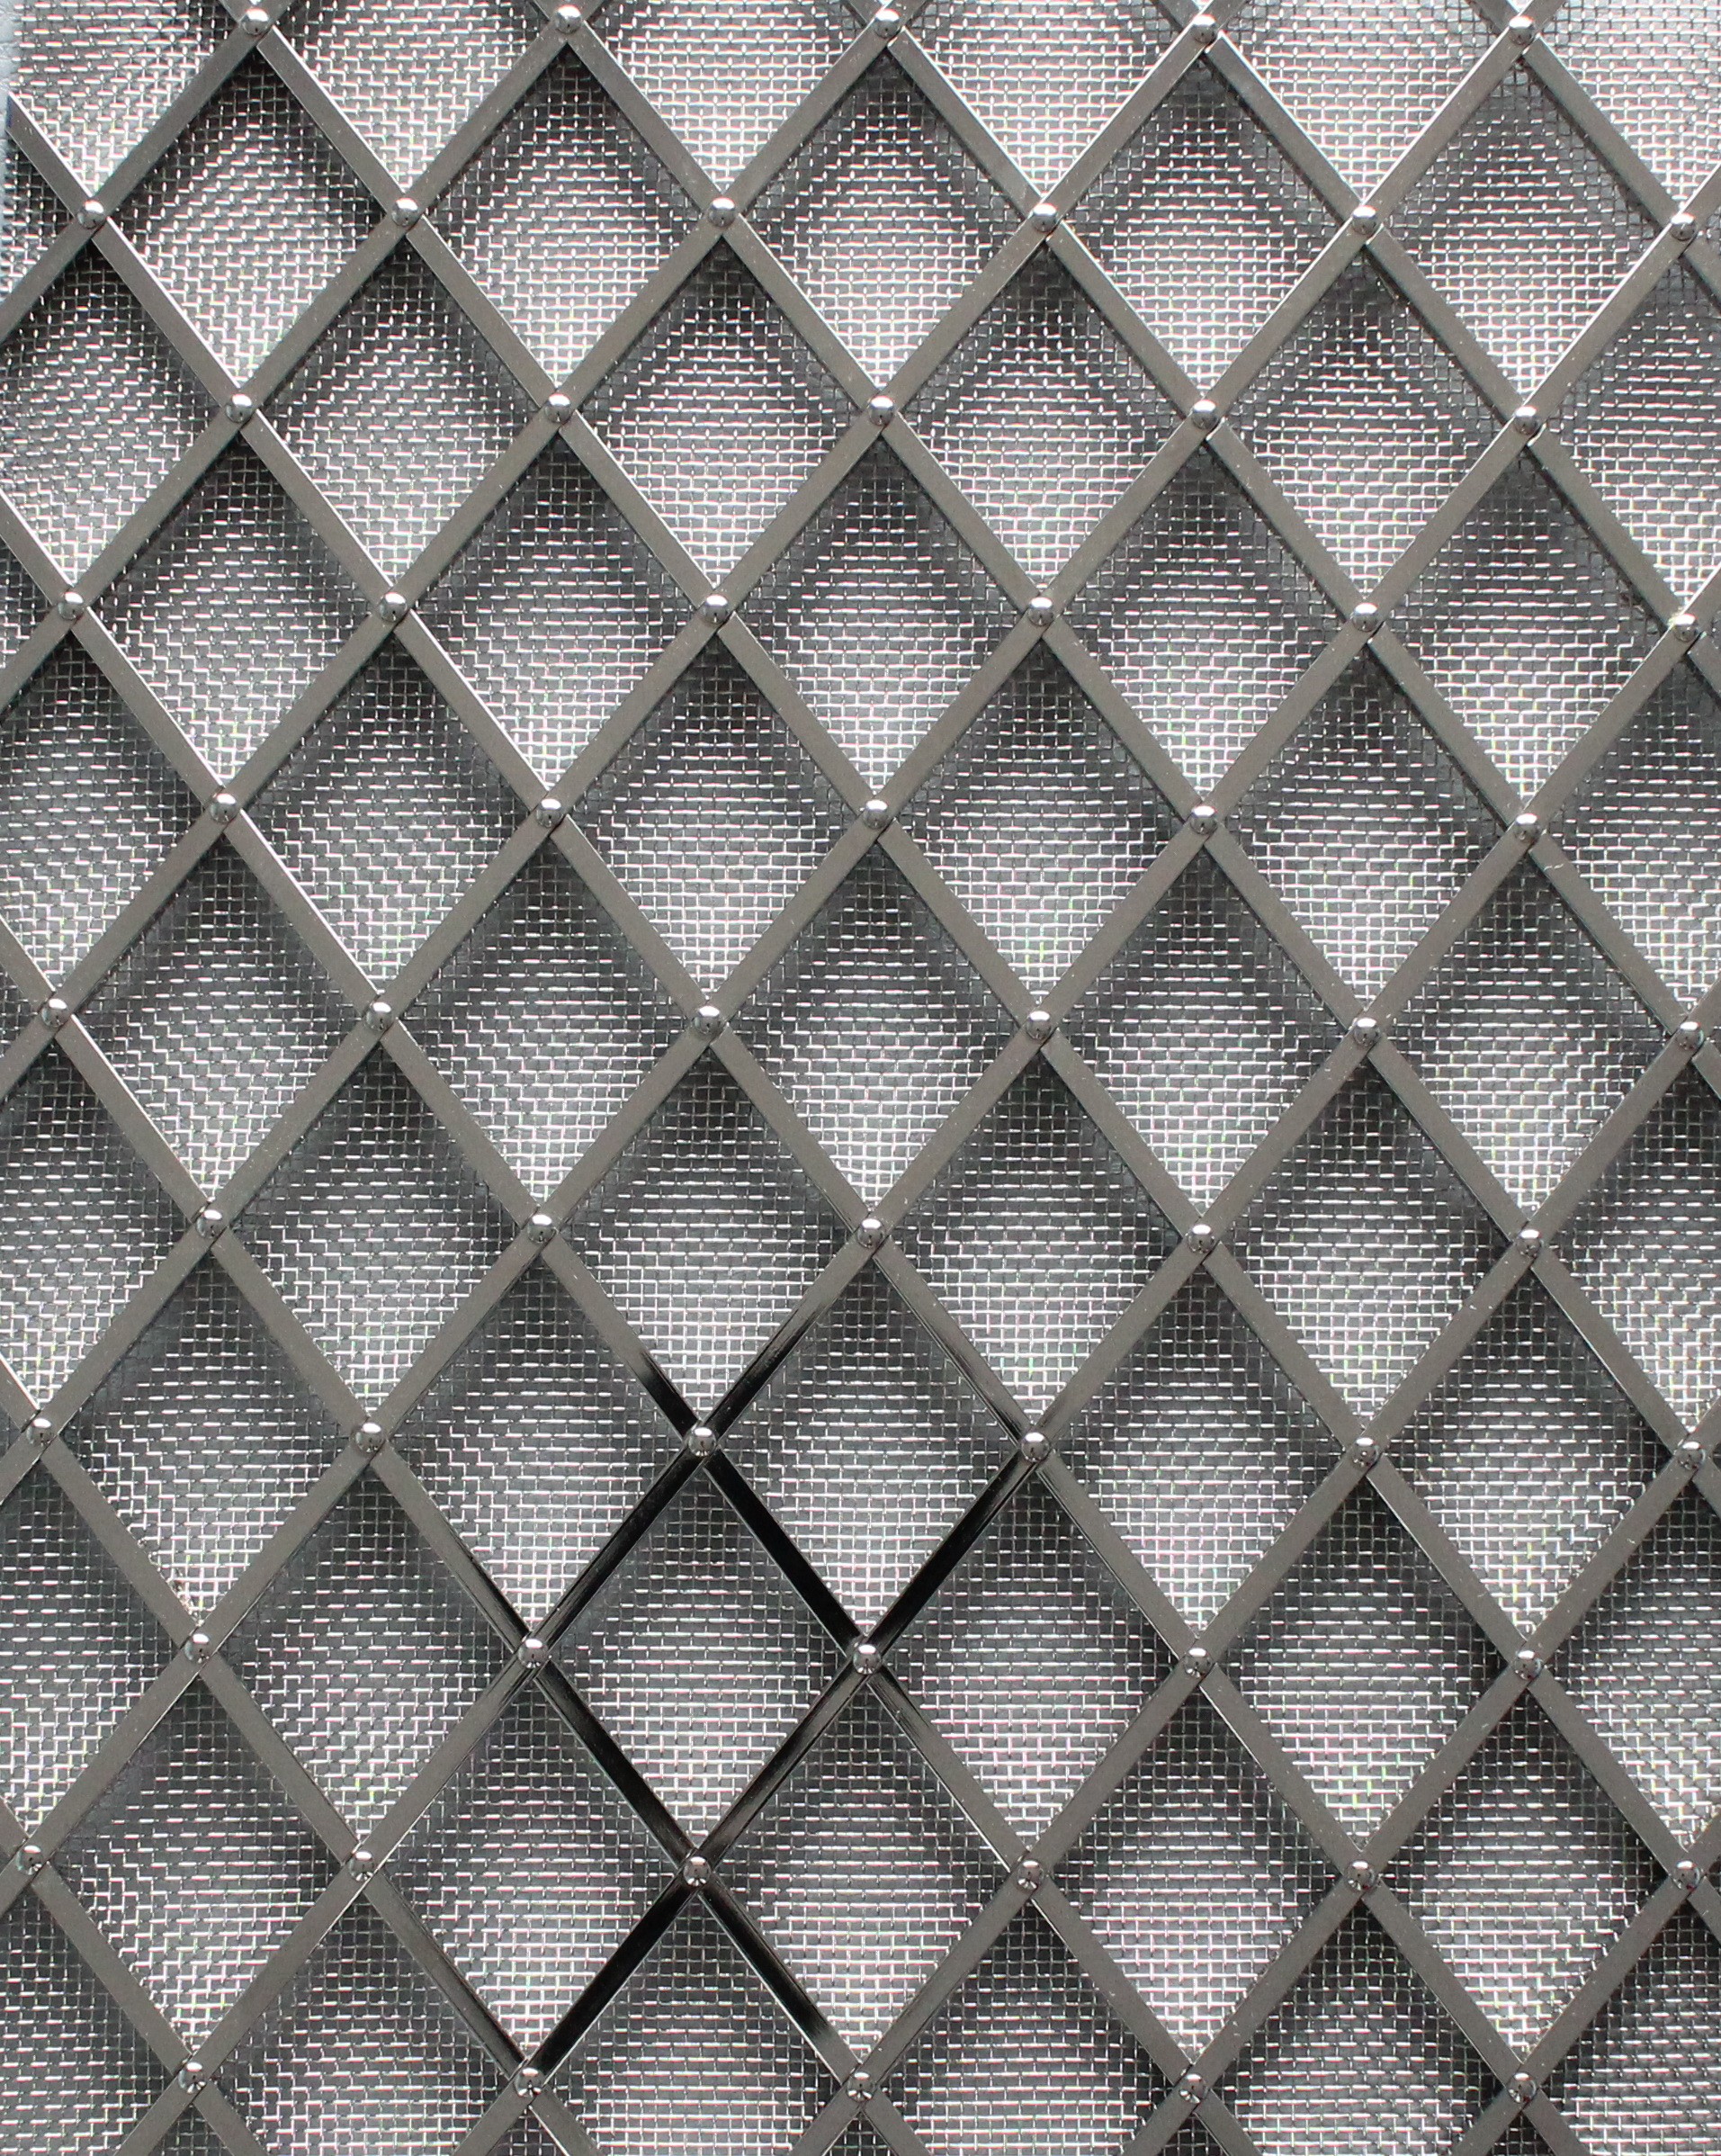 Small Diamond Grille (25mm)